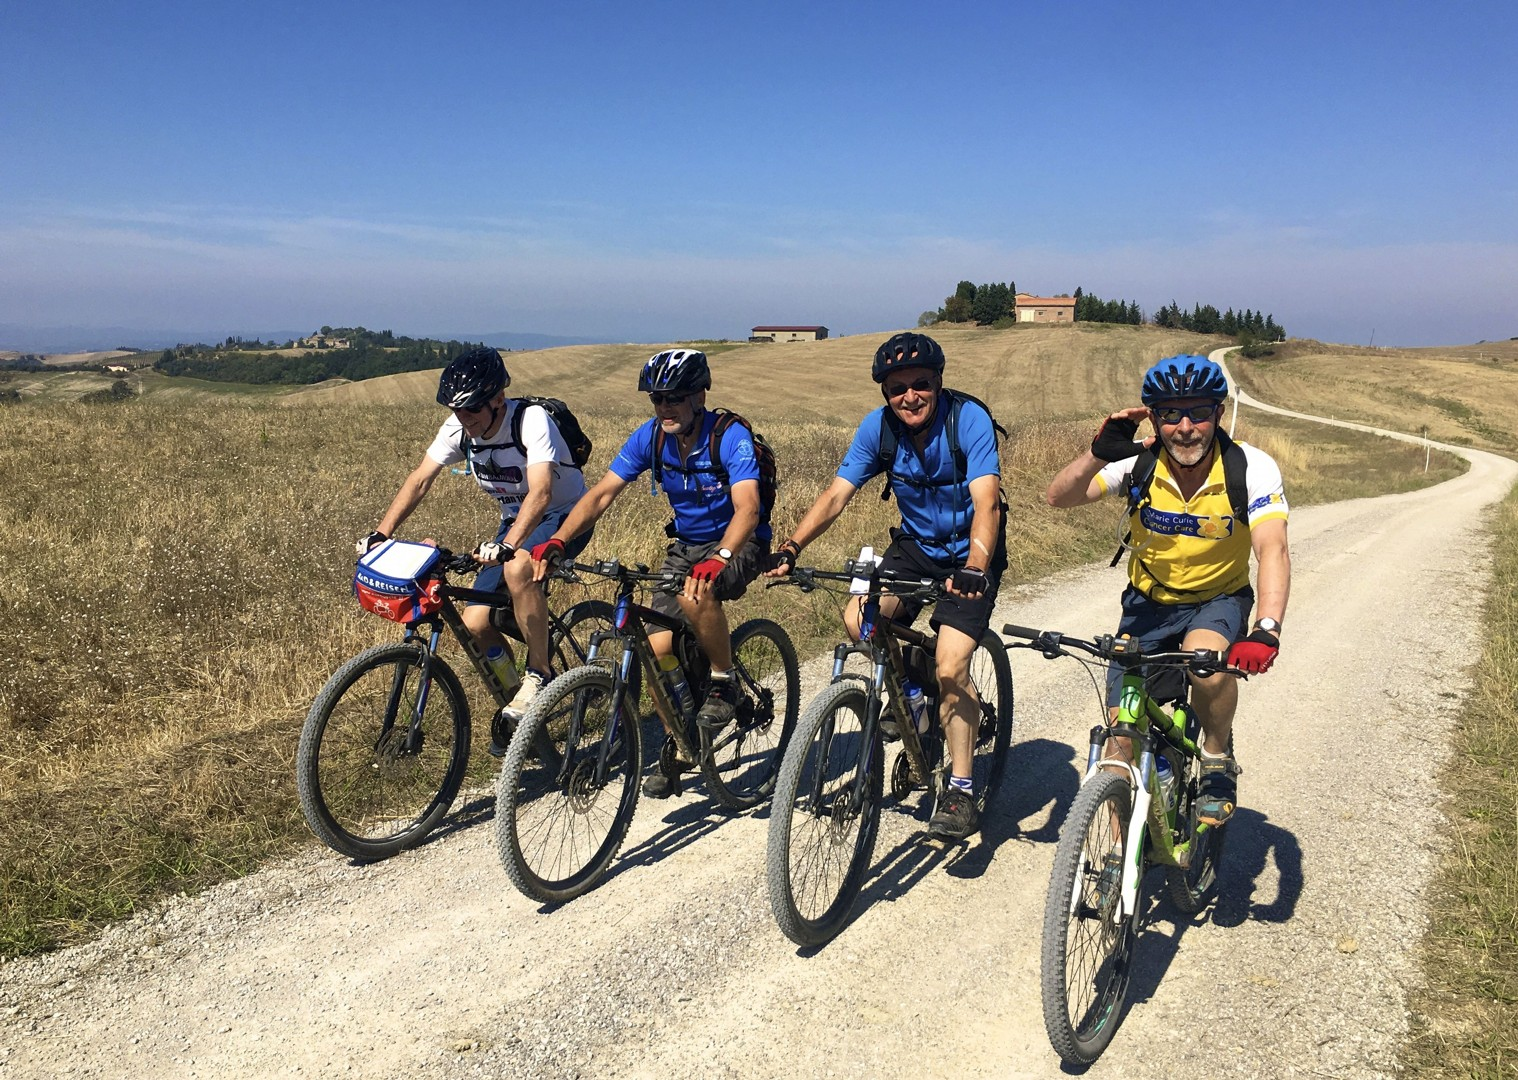 mountain-biking-holiday-italy-tuscany.jpg - Italy - Tuscany - Sacred Routes - Guided Mountain Bike Holiday - Mountain Biking